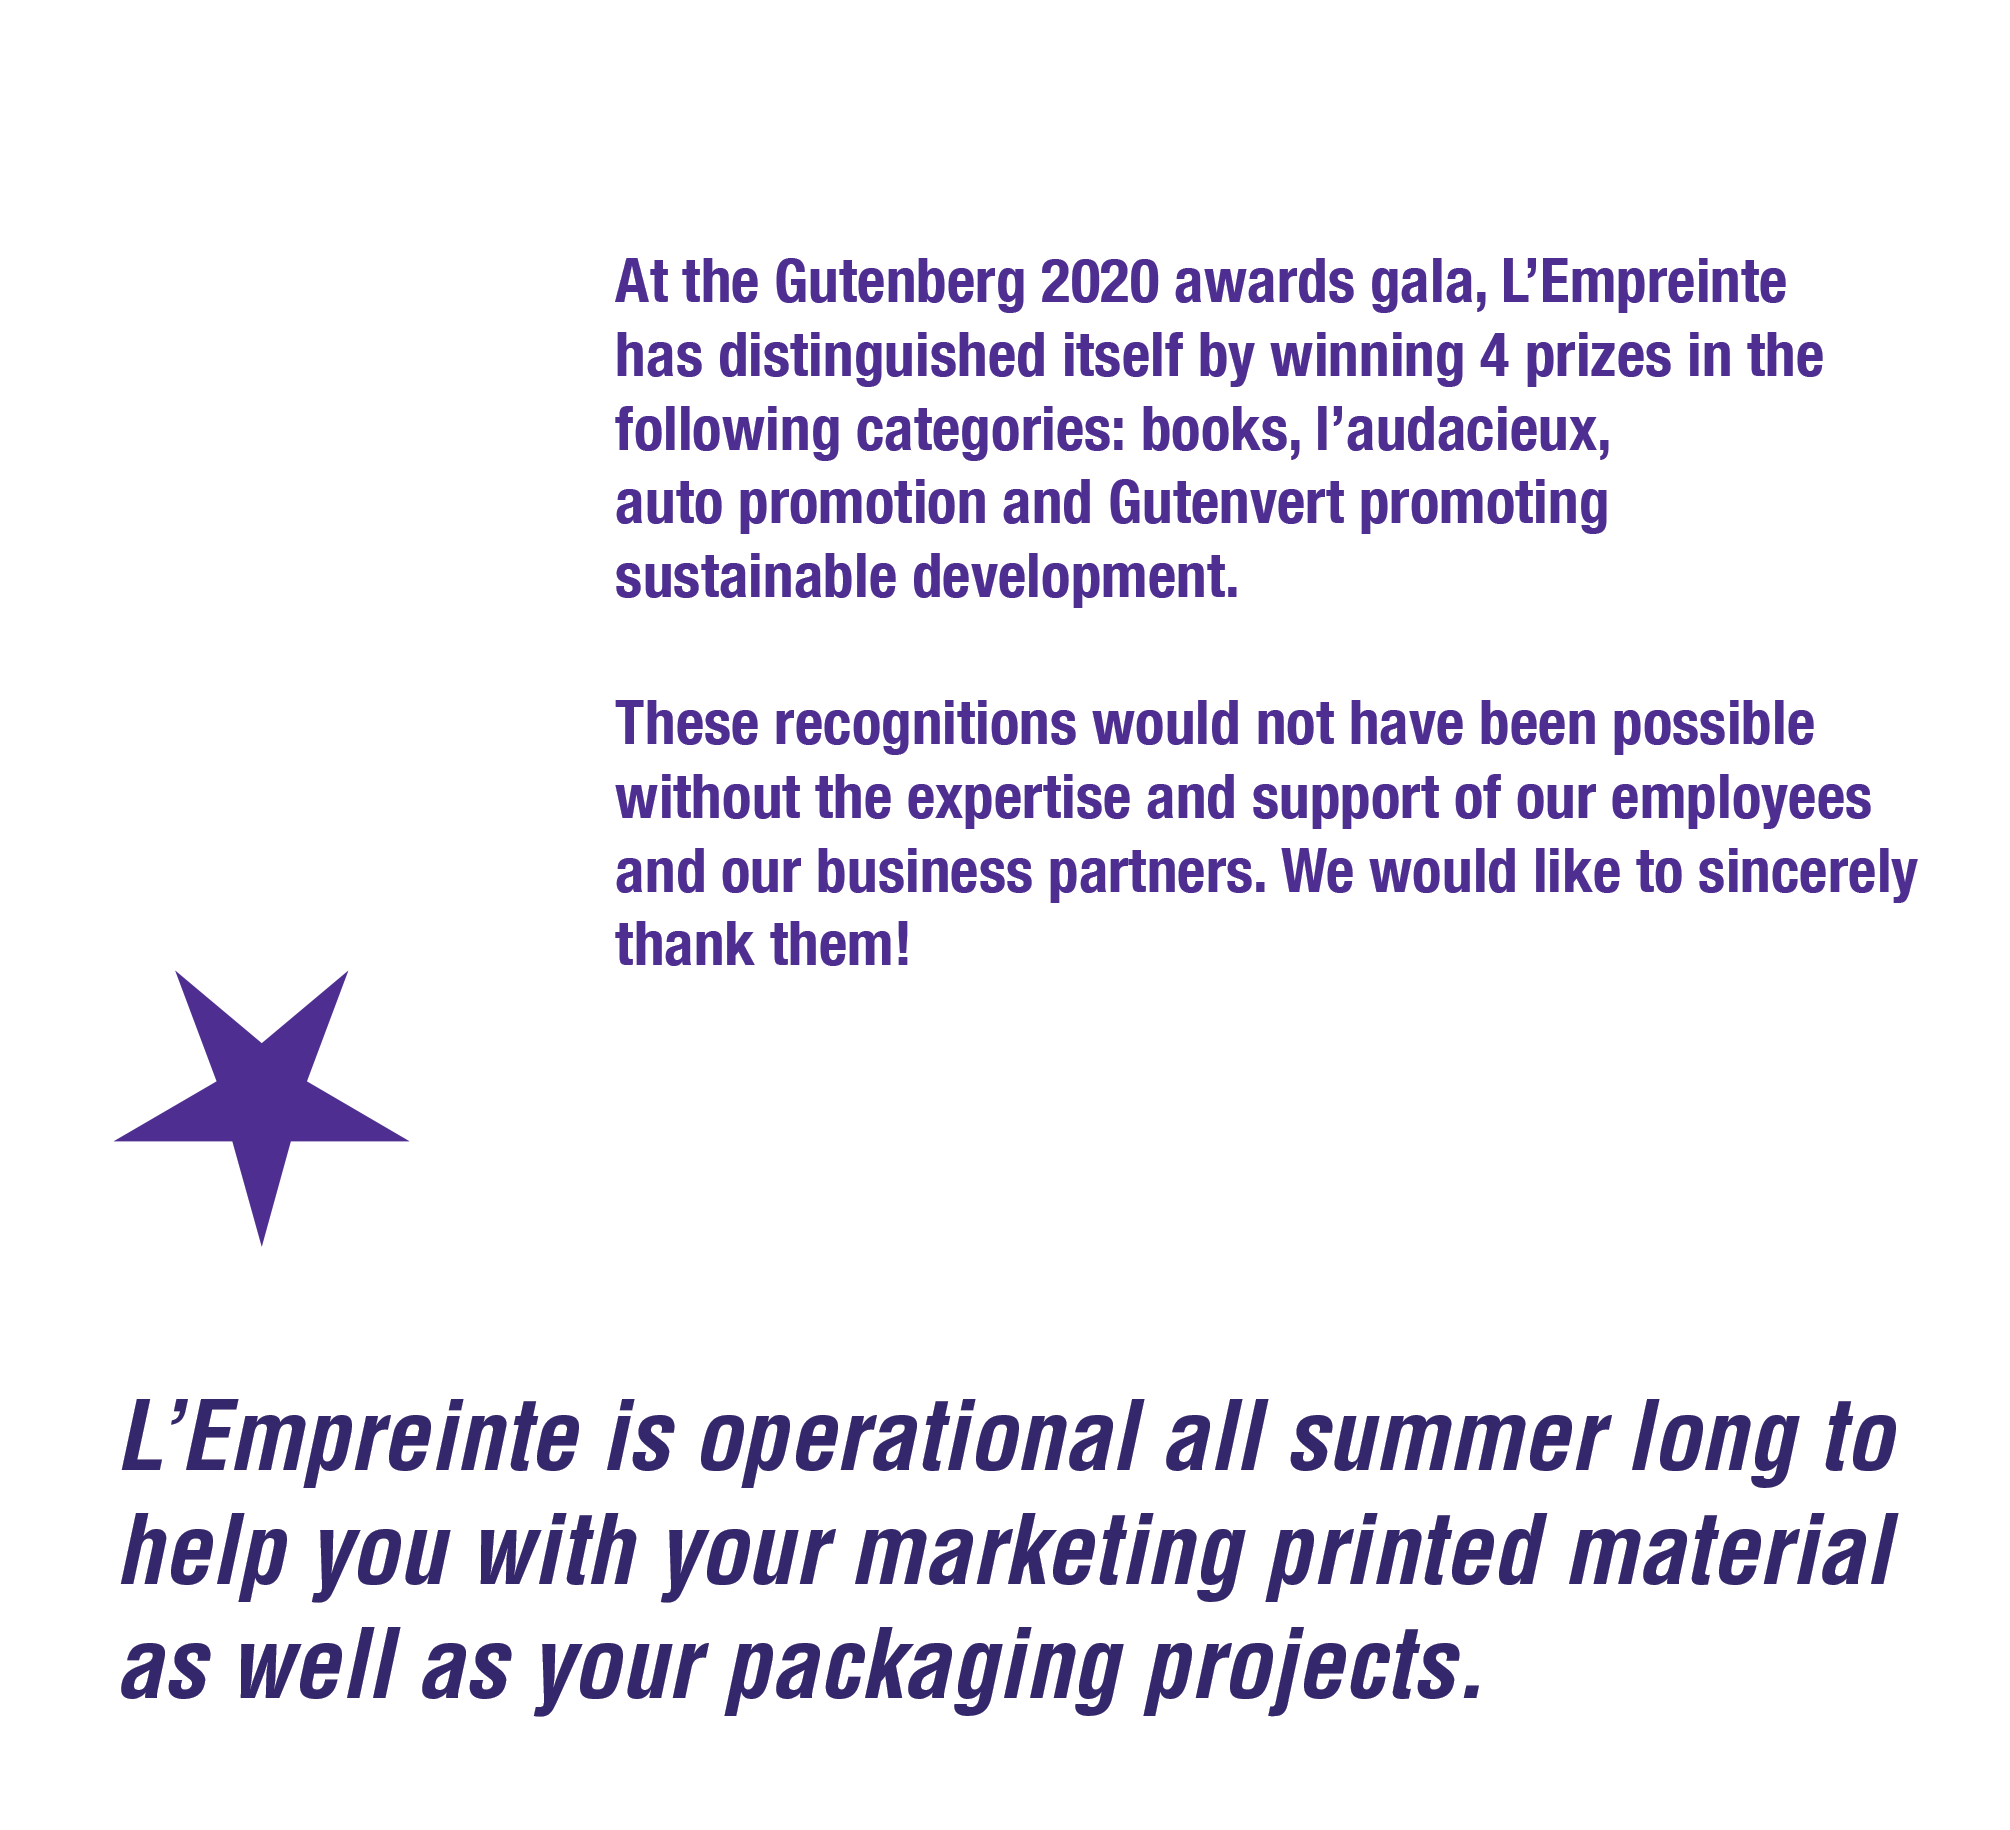 L'Empreinte is operational all summer